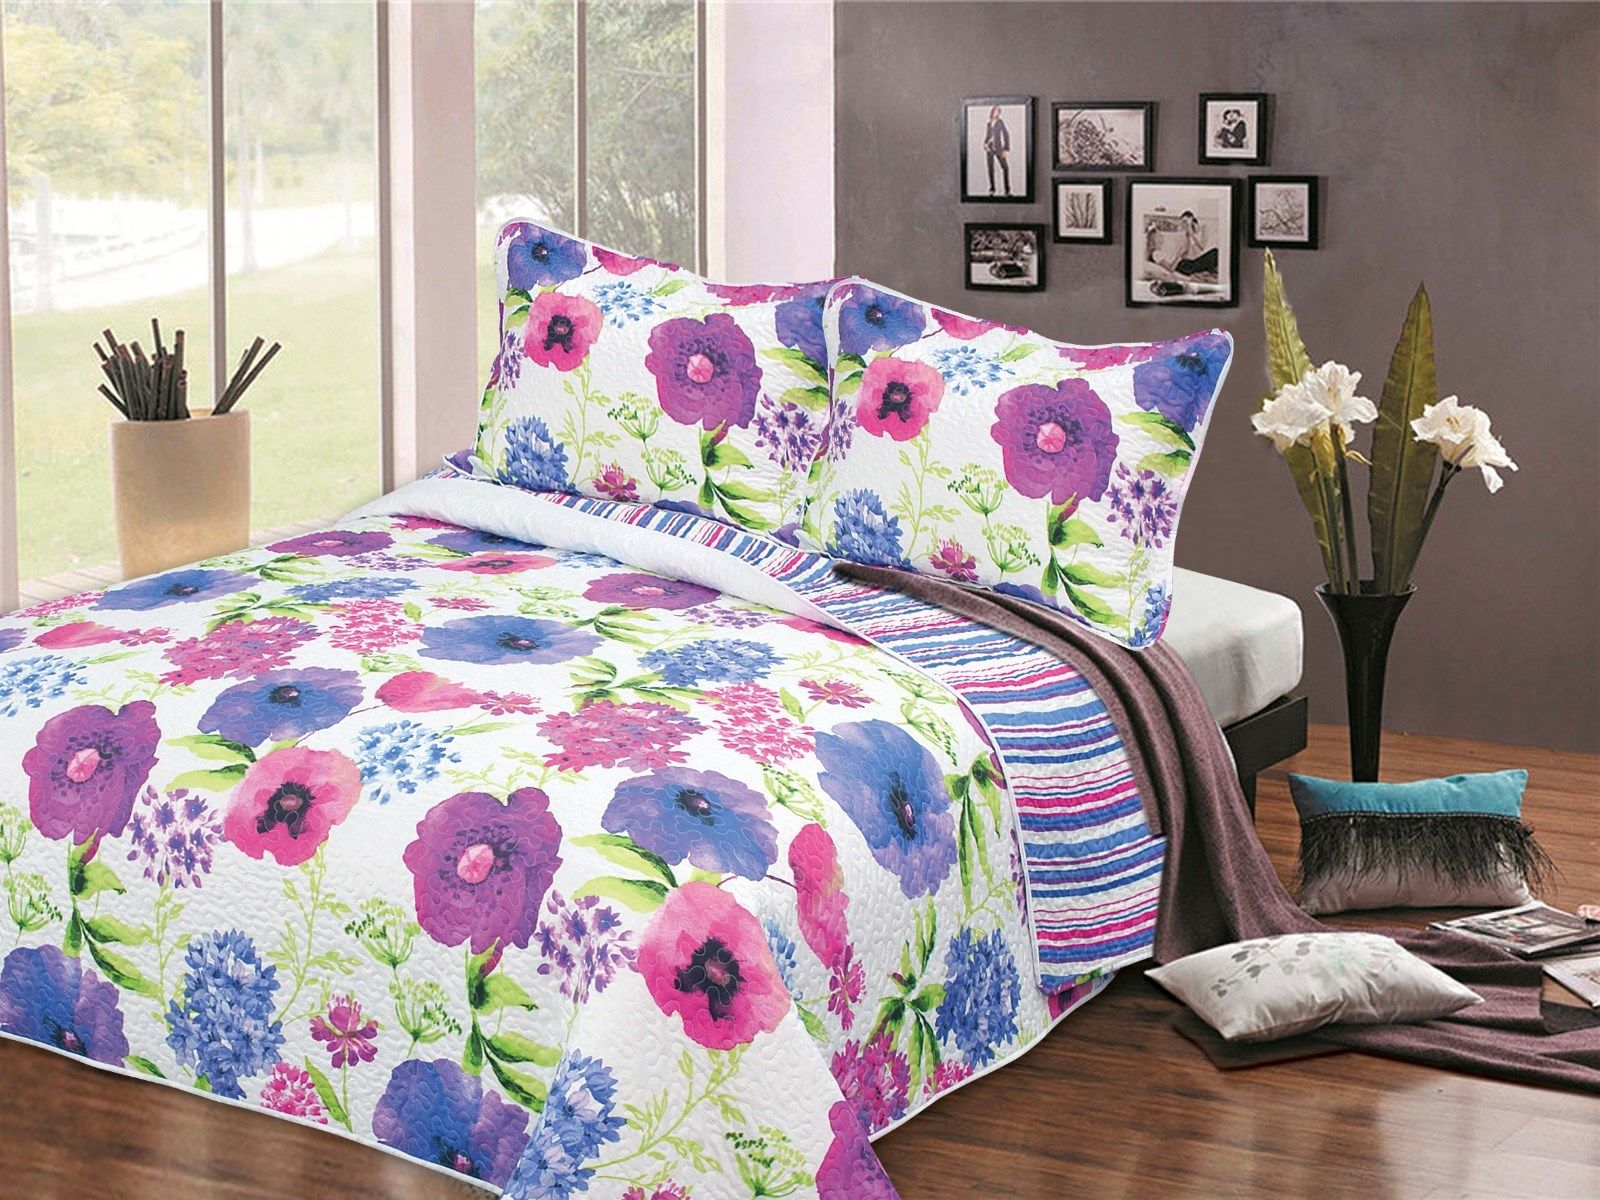 King Watercolour Bedspread